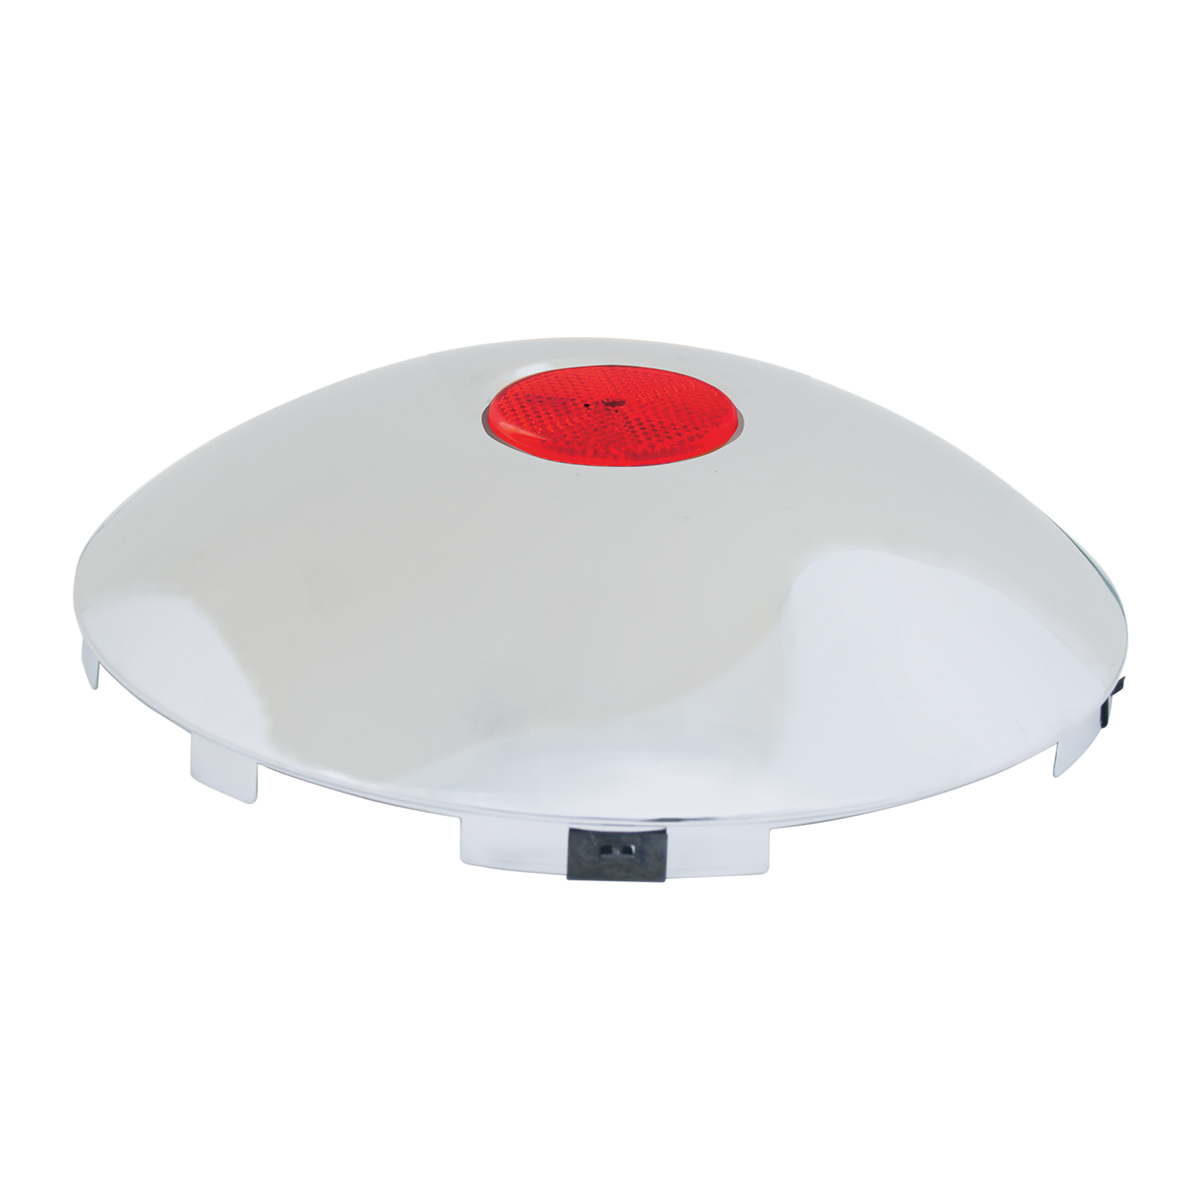 "#10794 Universal 1"" Front Hub Caps with 2"" Top Mounted Red Reflector"